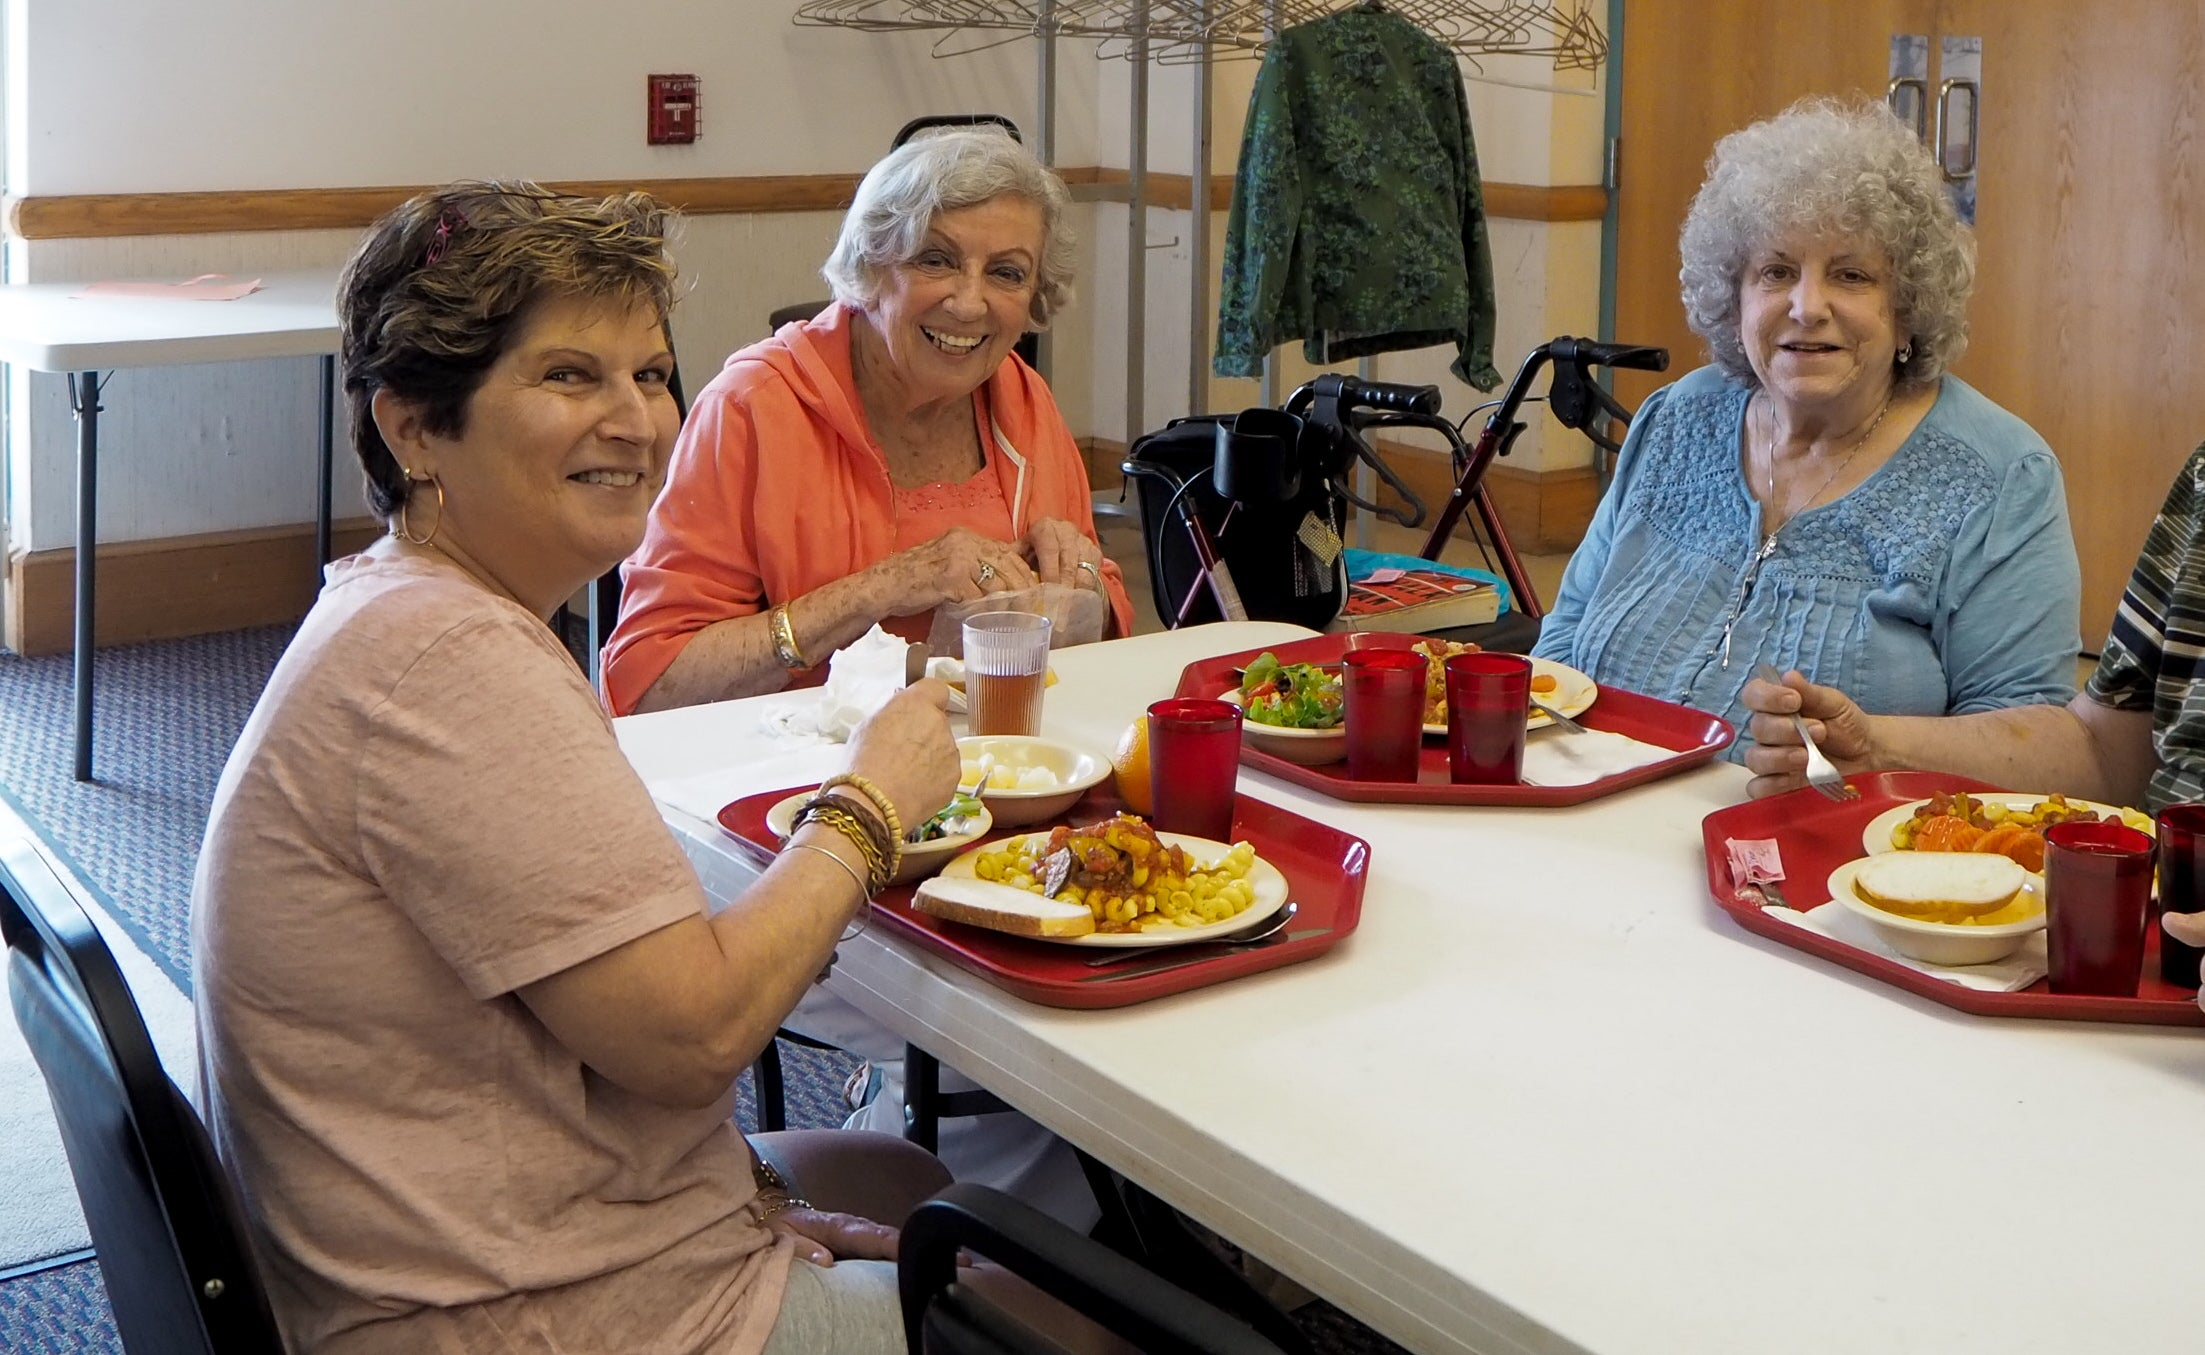 Older adults at table